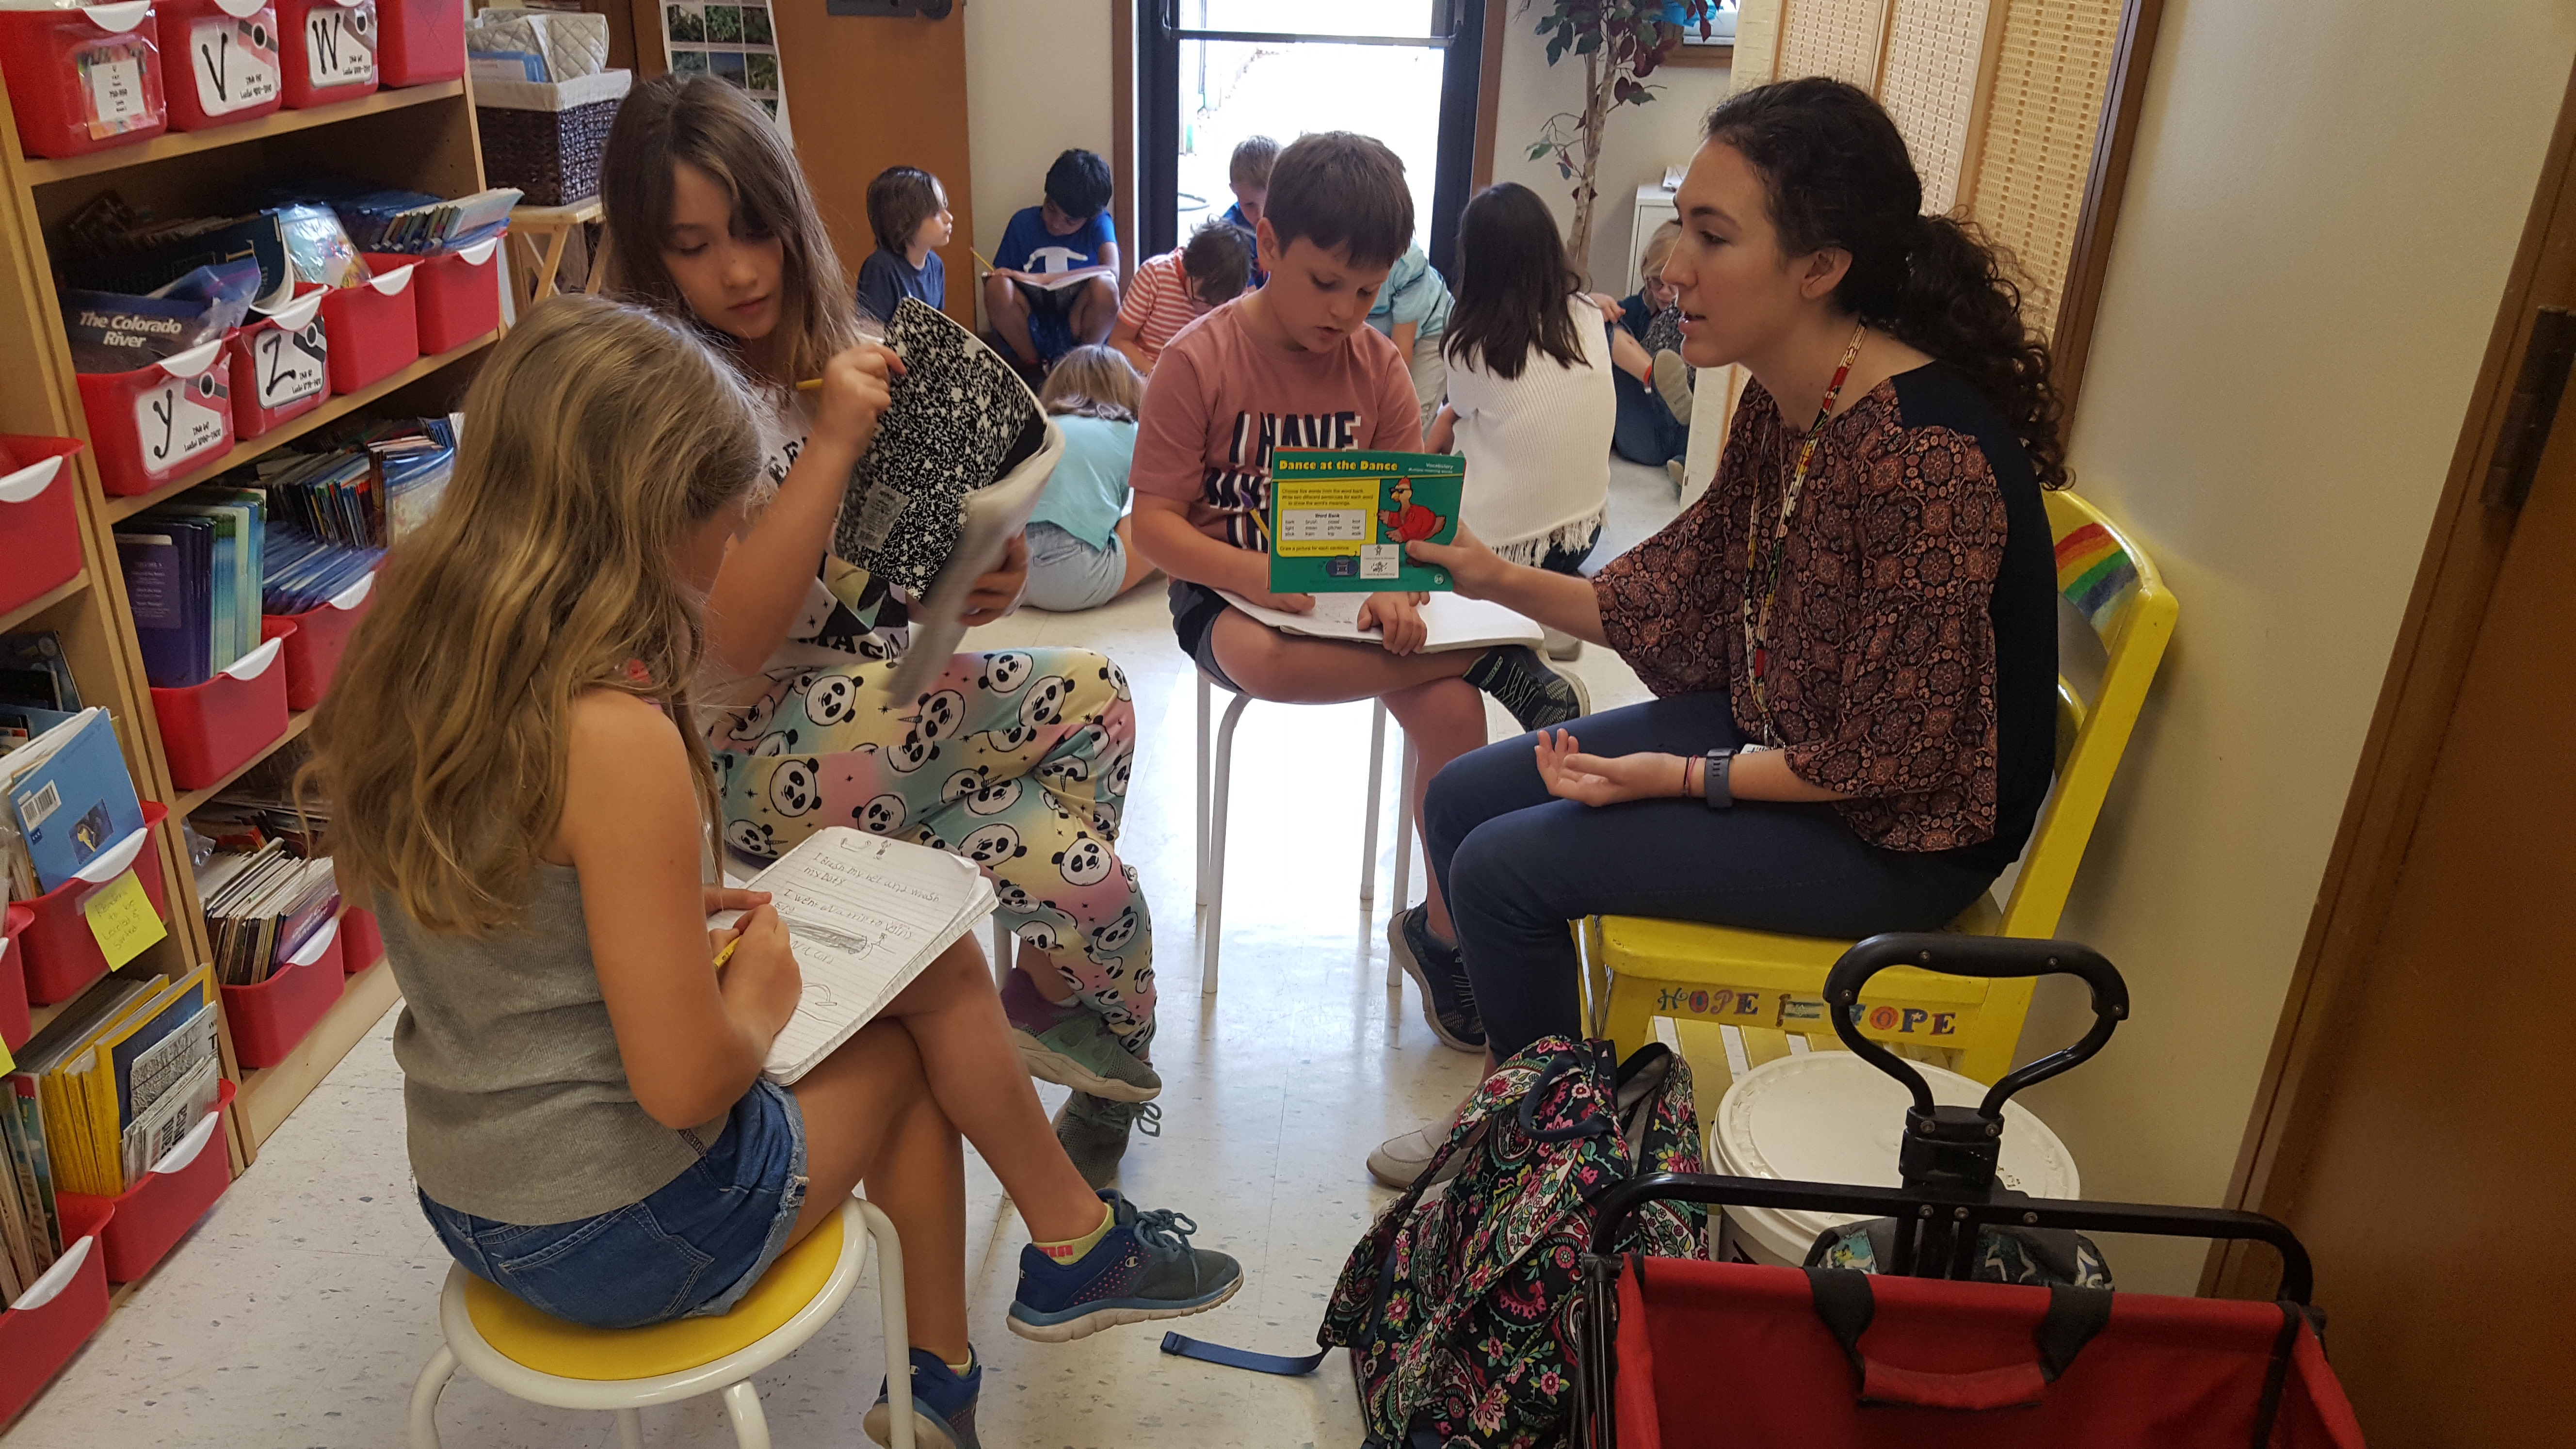 UNF student teaching children in a classroom setting